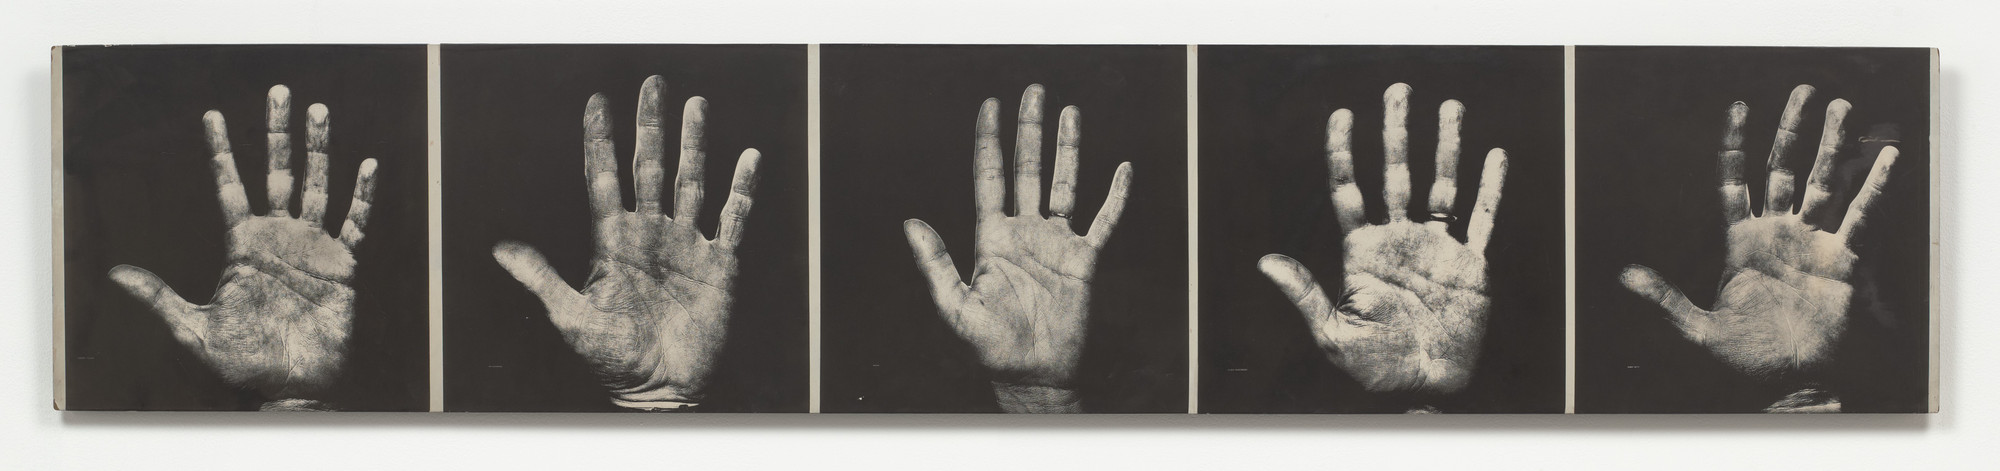 Robert Filliou, Scott Hyde. Hand Show. 1967